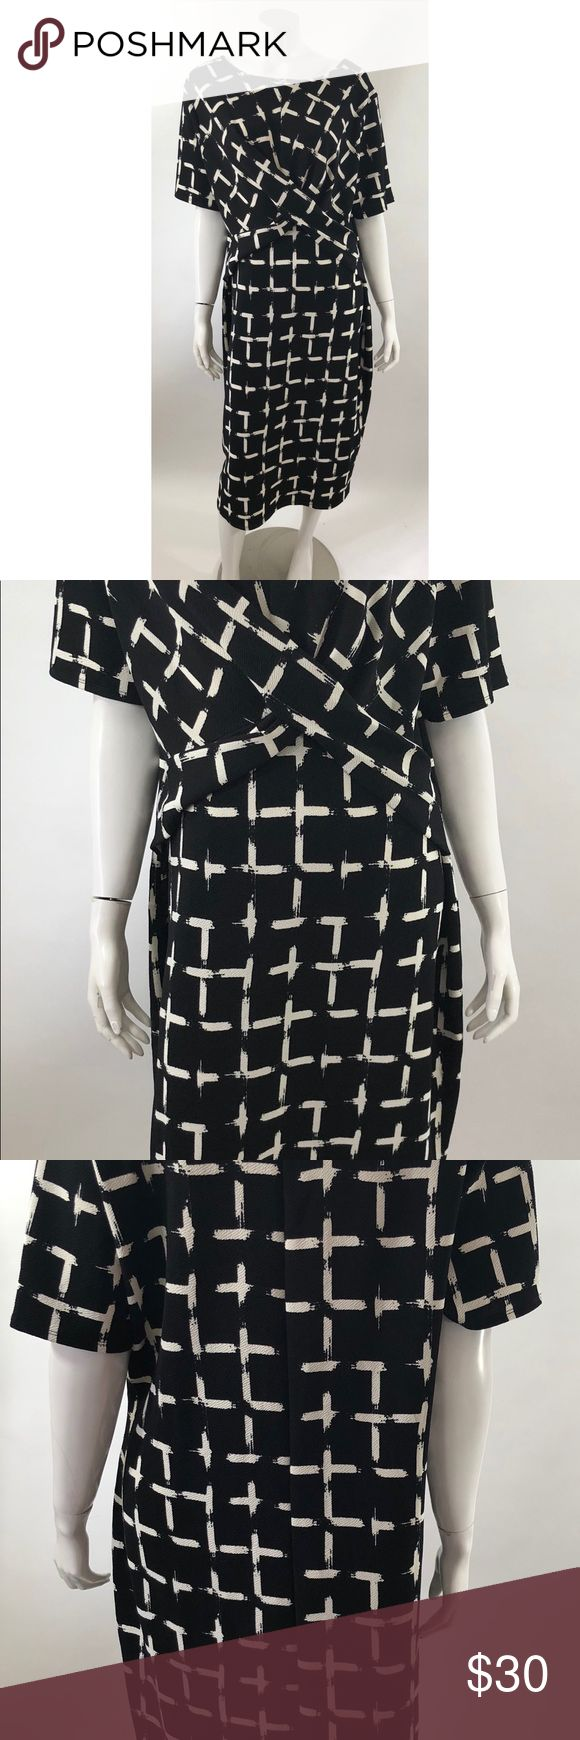 ASOS Womens Dress Plus Size 22 Black White Sheath ASOS Womens Dress Plus Size 22 Black White Sheath Half Sleeve Career. Measurements: (in inches) Underarm to underarm: 24.5 Length: 45 Waist: 39  Good, gently used condition ASOS Dresses